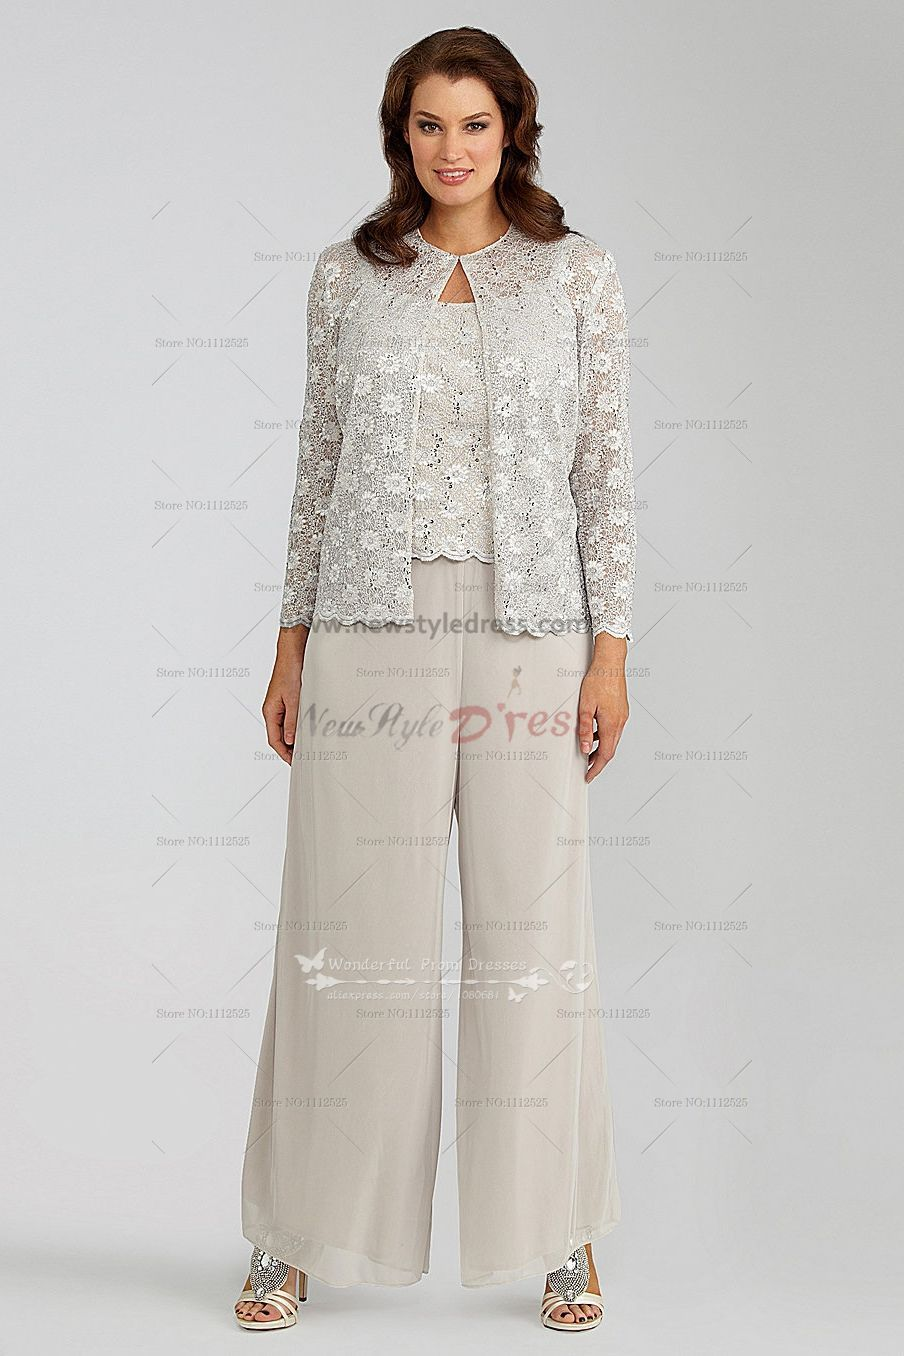 Elegant Ivory Lace 3 Piece Mother Of The Bride Pants Suit Nmo 029